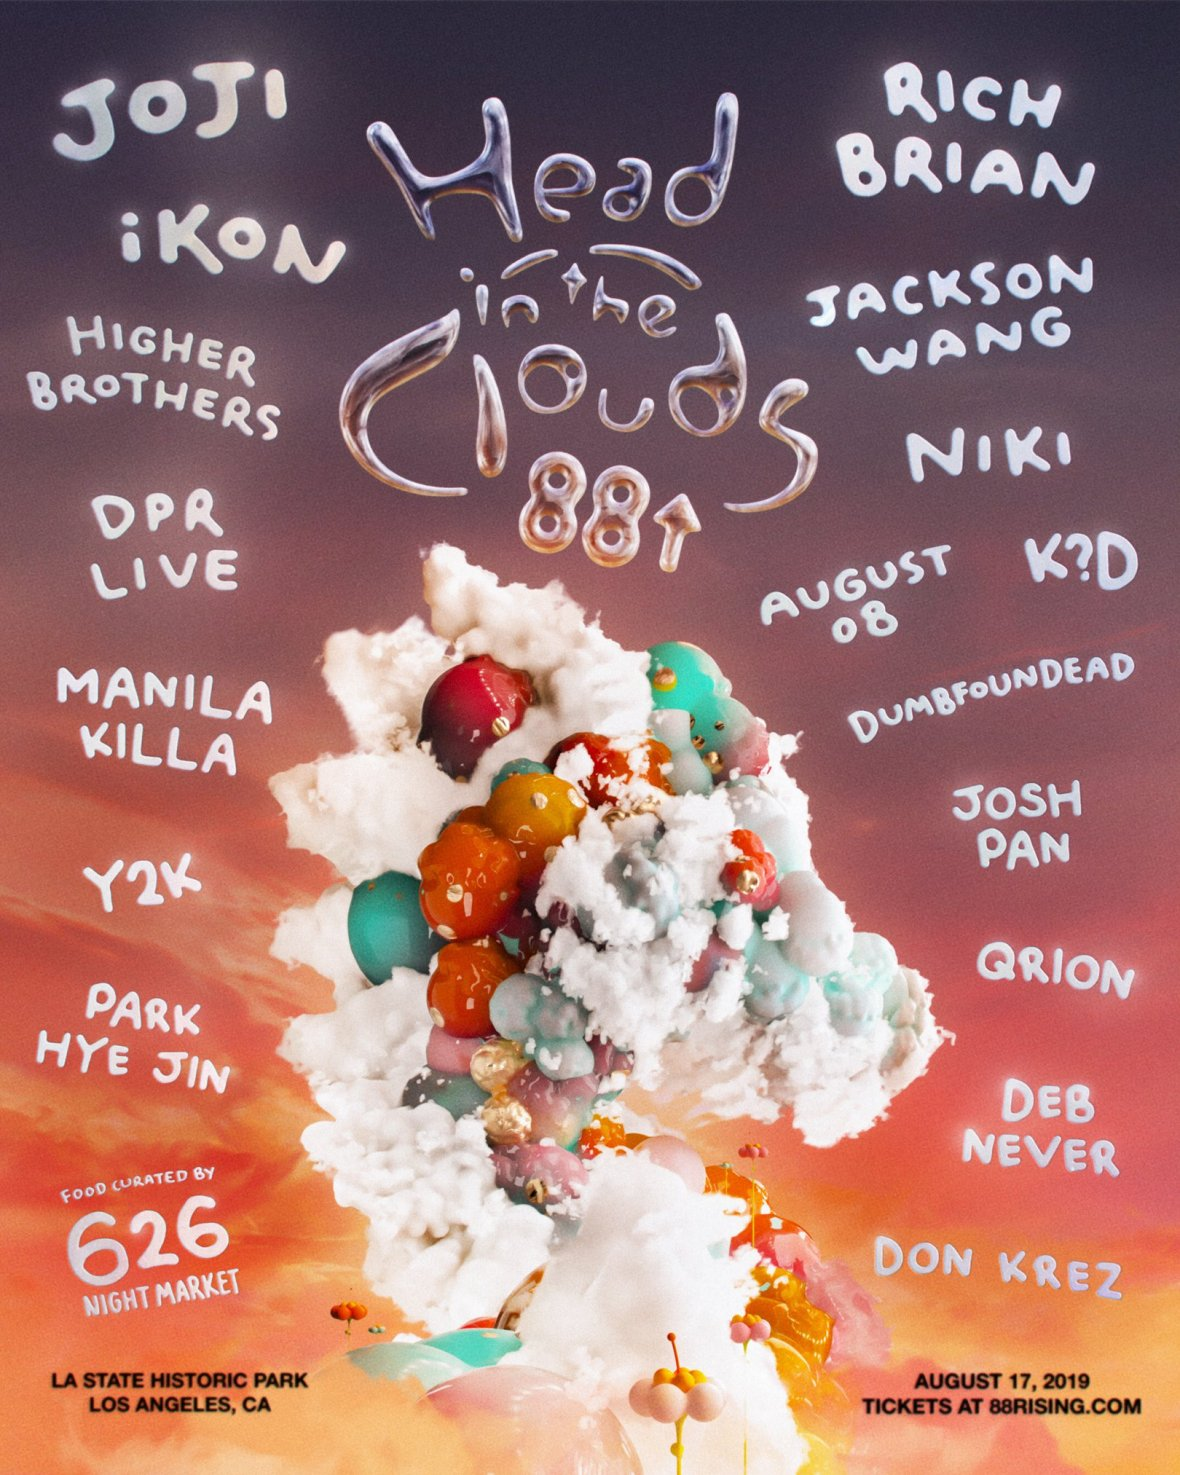 Head In The Clouds Music & Arts Festival Returns to LA State Historic Park on August 17